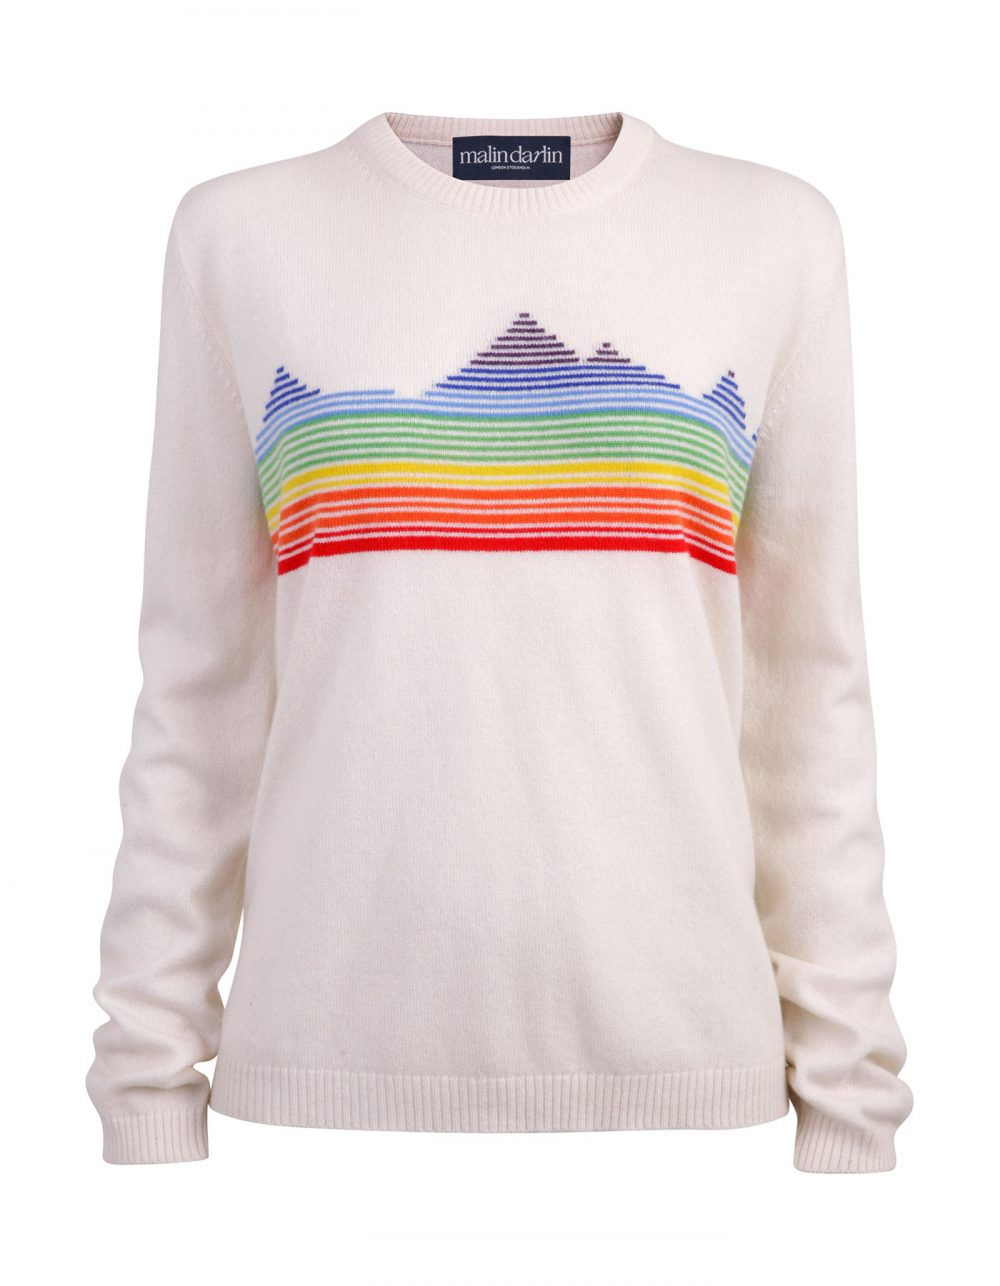 Malin darlin and lady kilas charities Rainbow Mountain designer cashmere jumper laid flat on a white background.